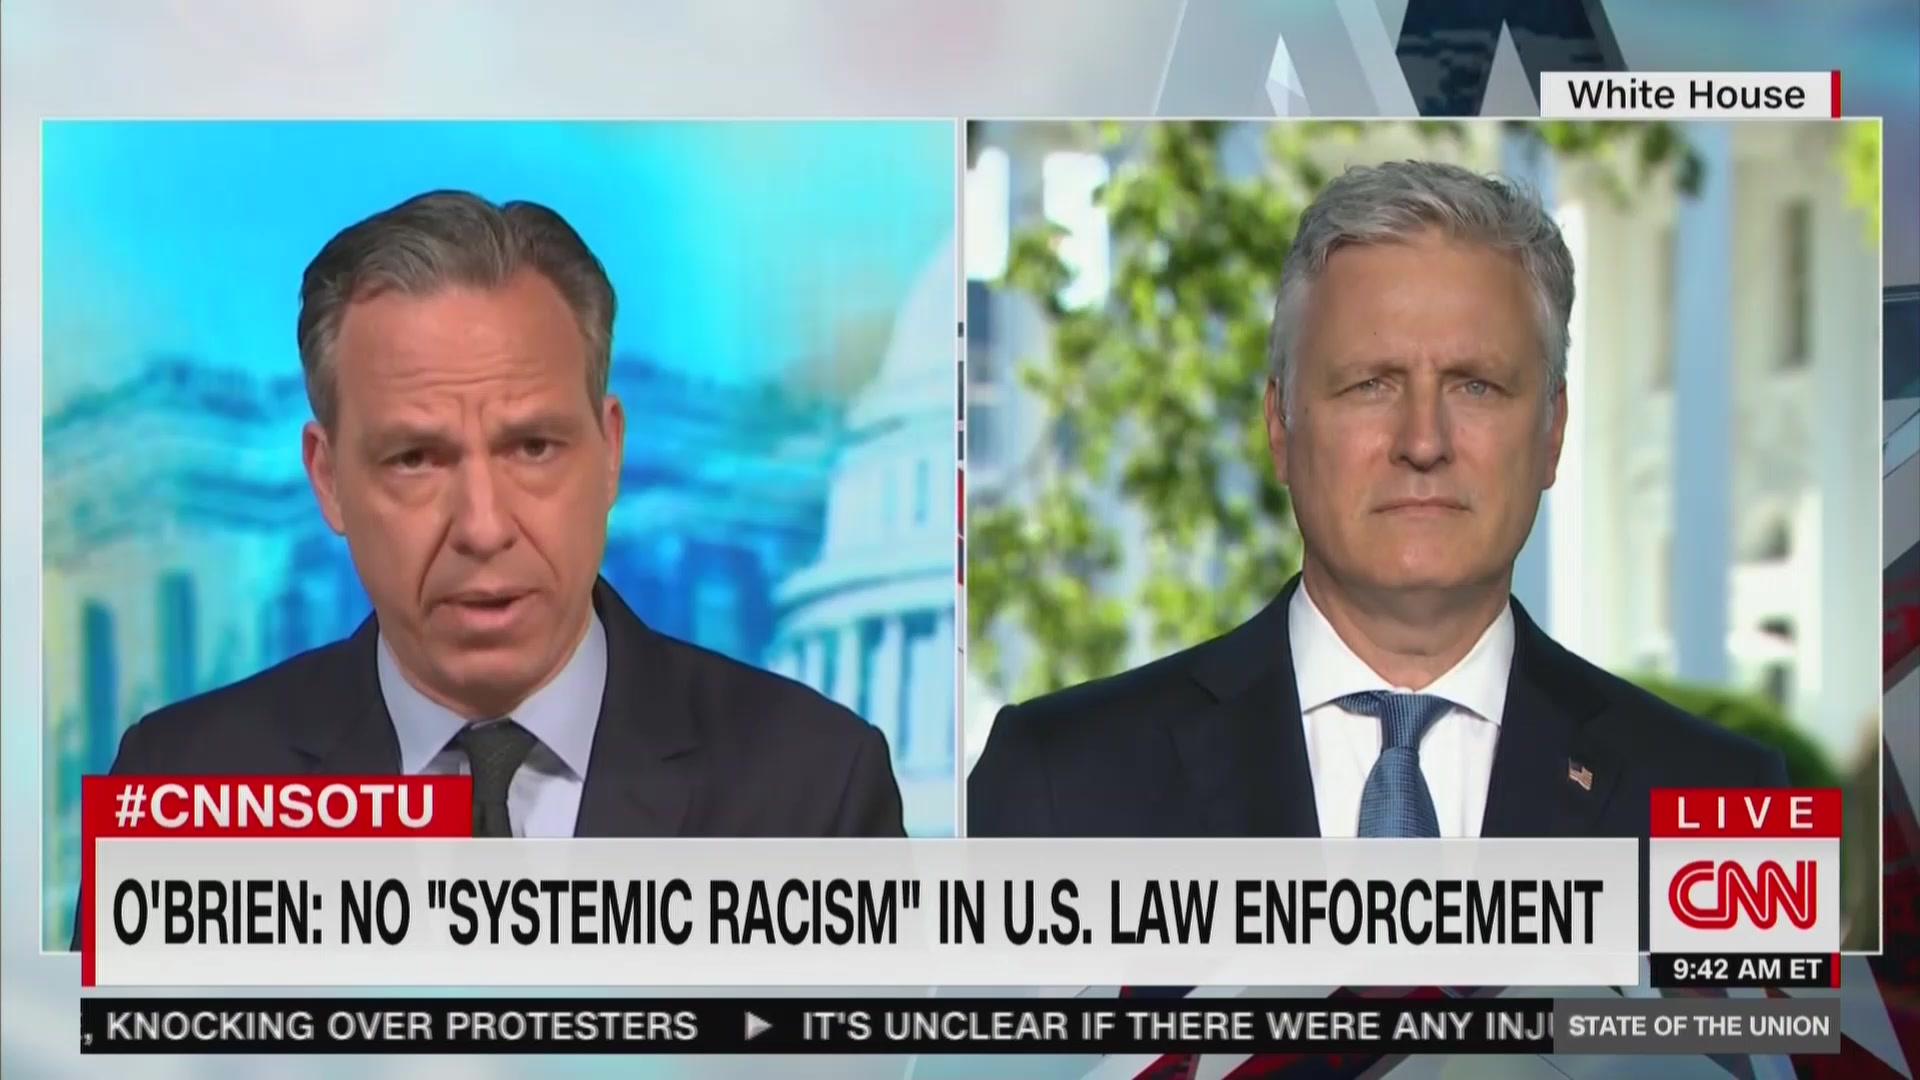 Robert O'Brien: 'A Few Bad Apples' In Law Enforcement, But No Systemic Racism